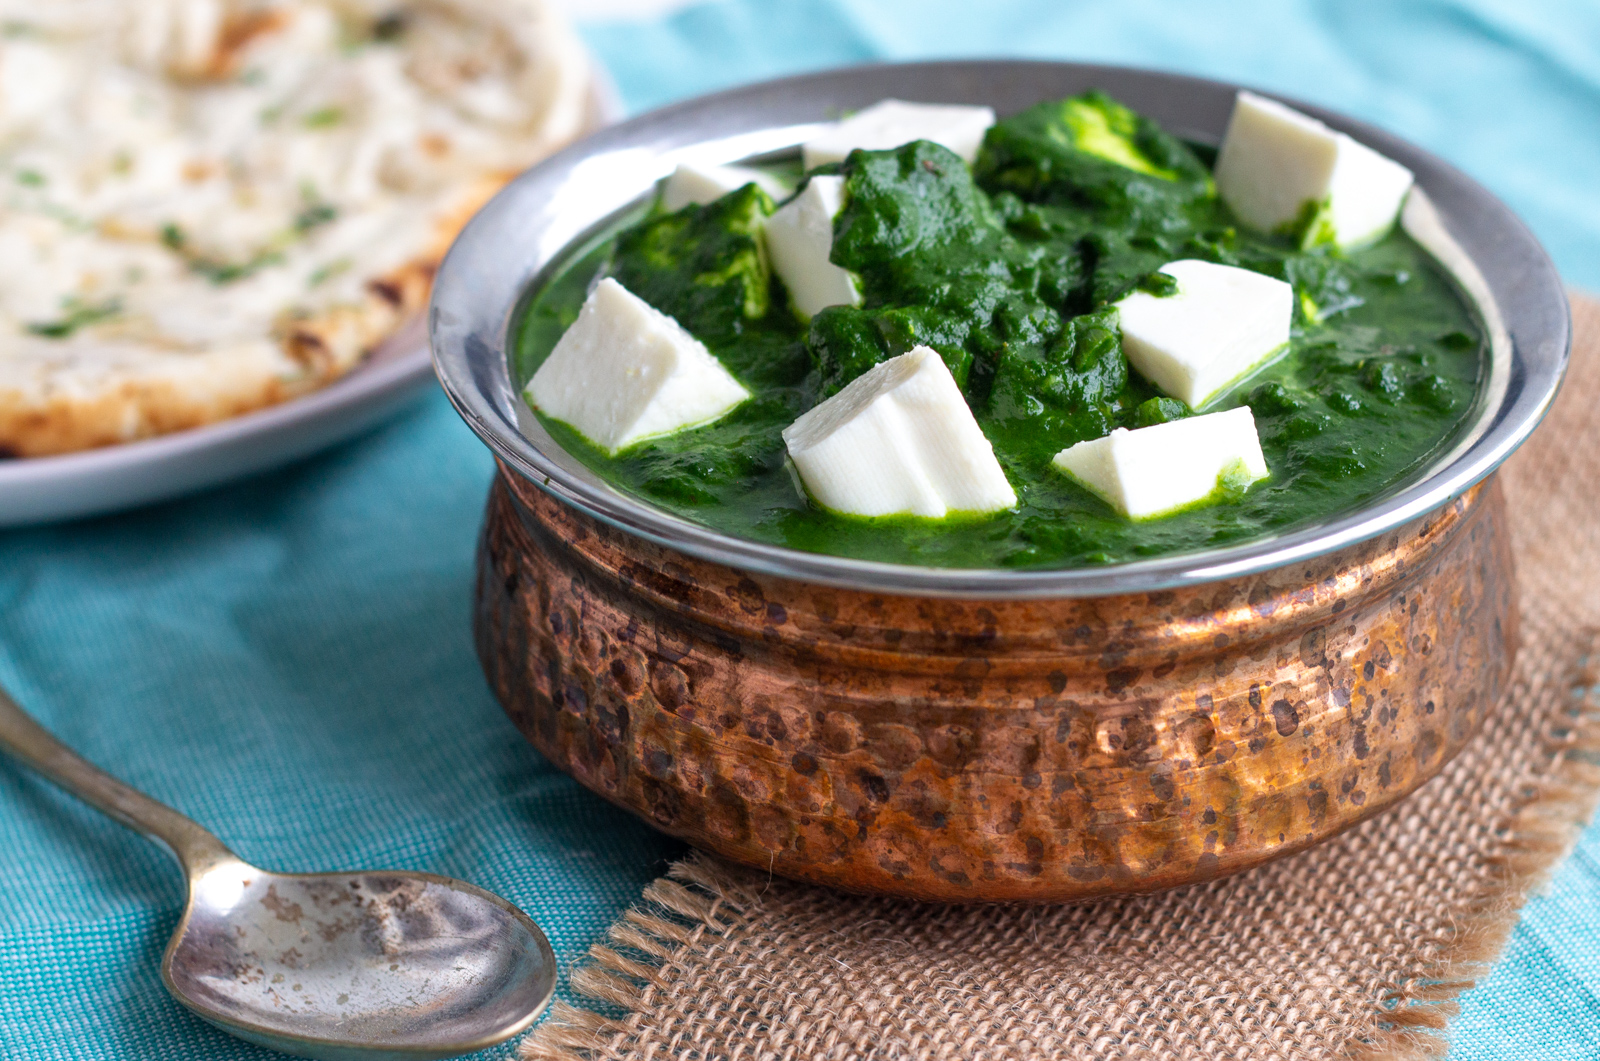 A copper coloured serving bowl is filled with palak paneer or spinach curry with Indian cottage cheese cubes in it. To the left of the palak paneer is a piece of naan, and at the bottom of the image a silver coloured spoon can be seen peeking.